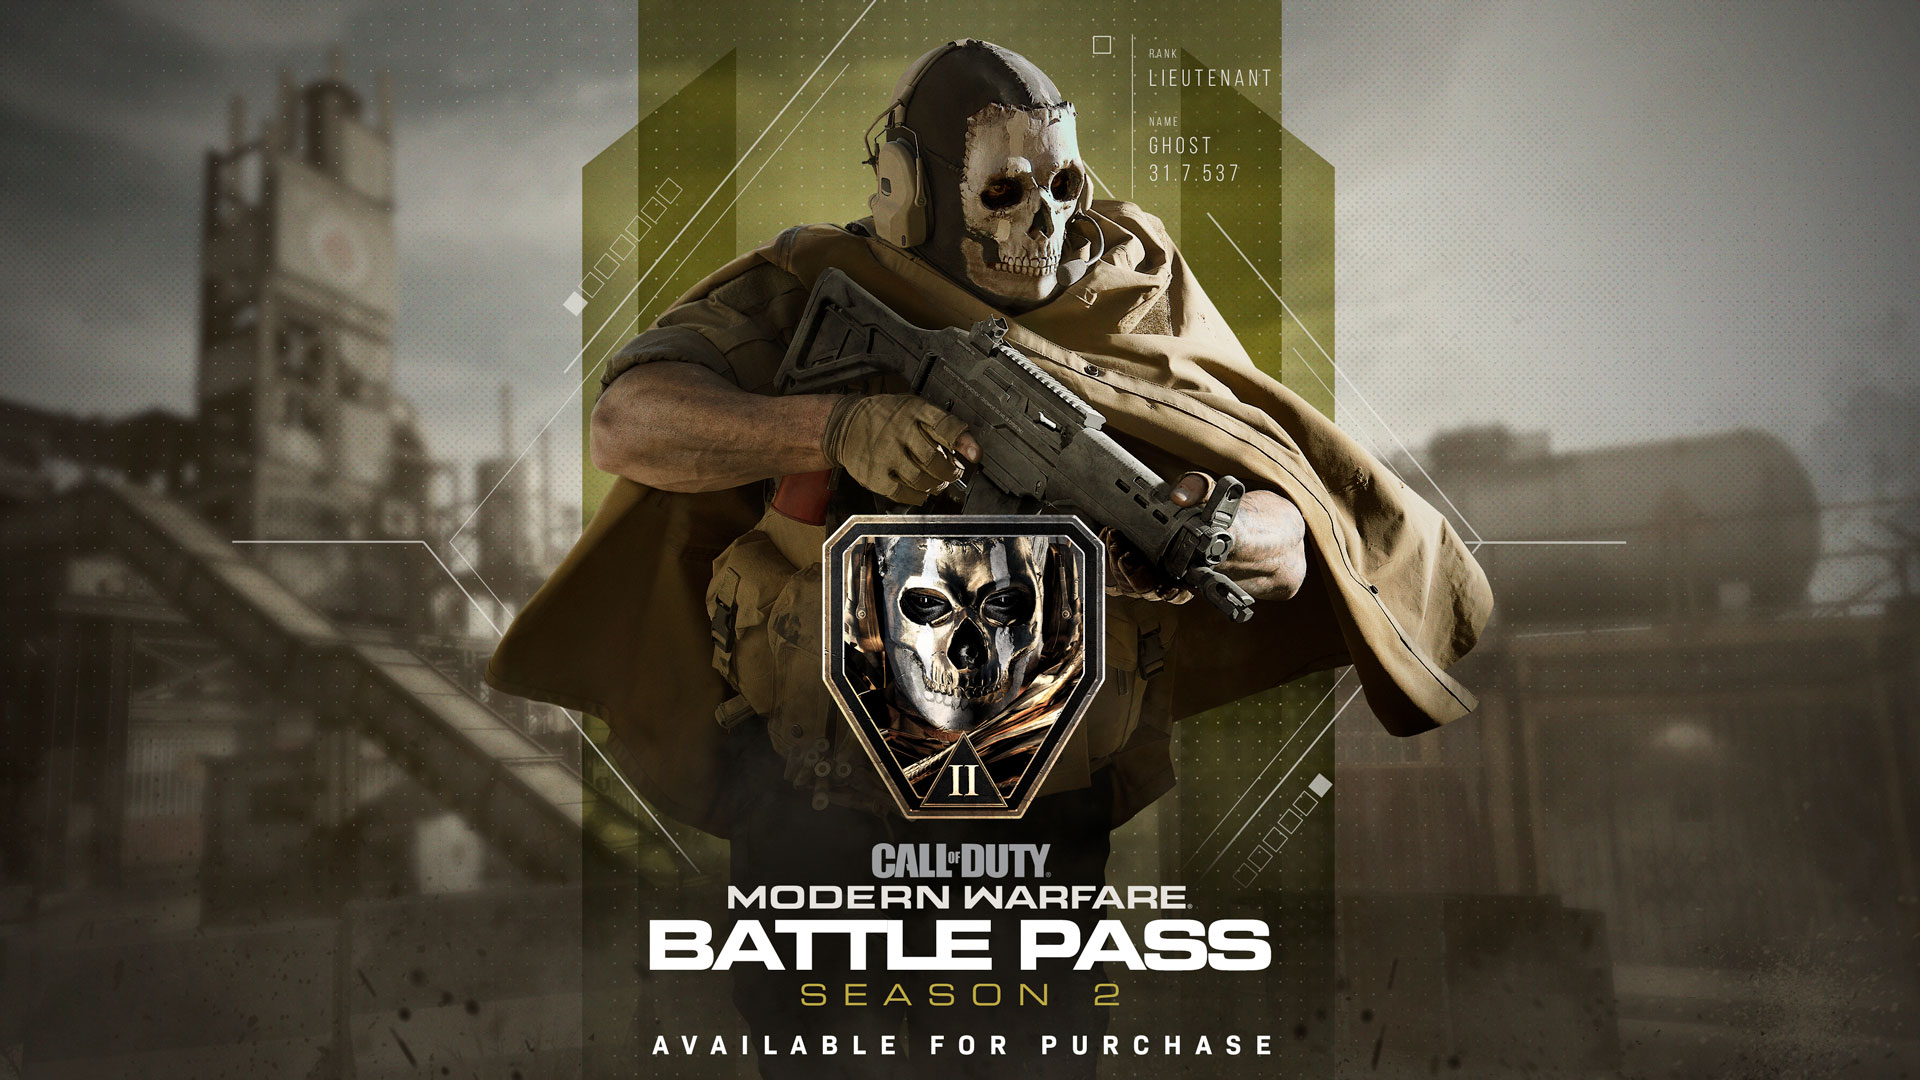 Battle Pass Season 2